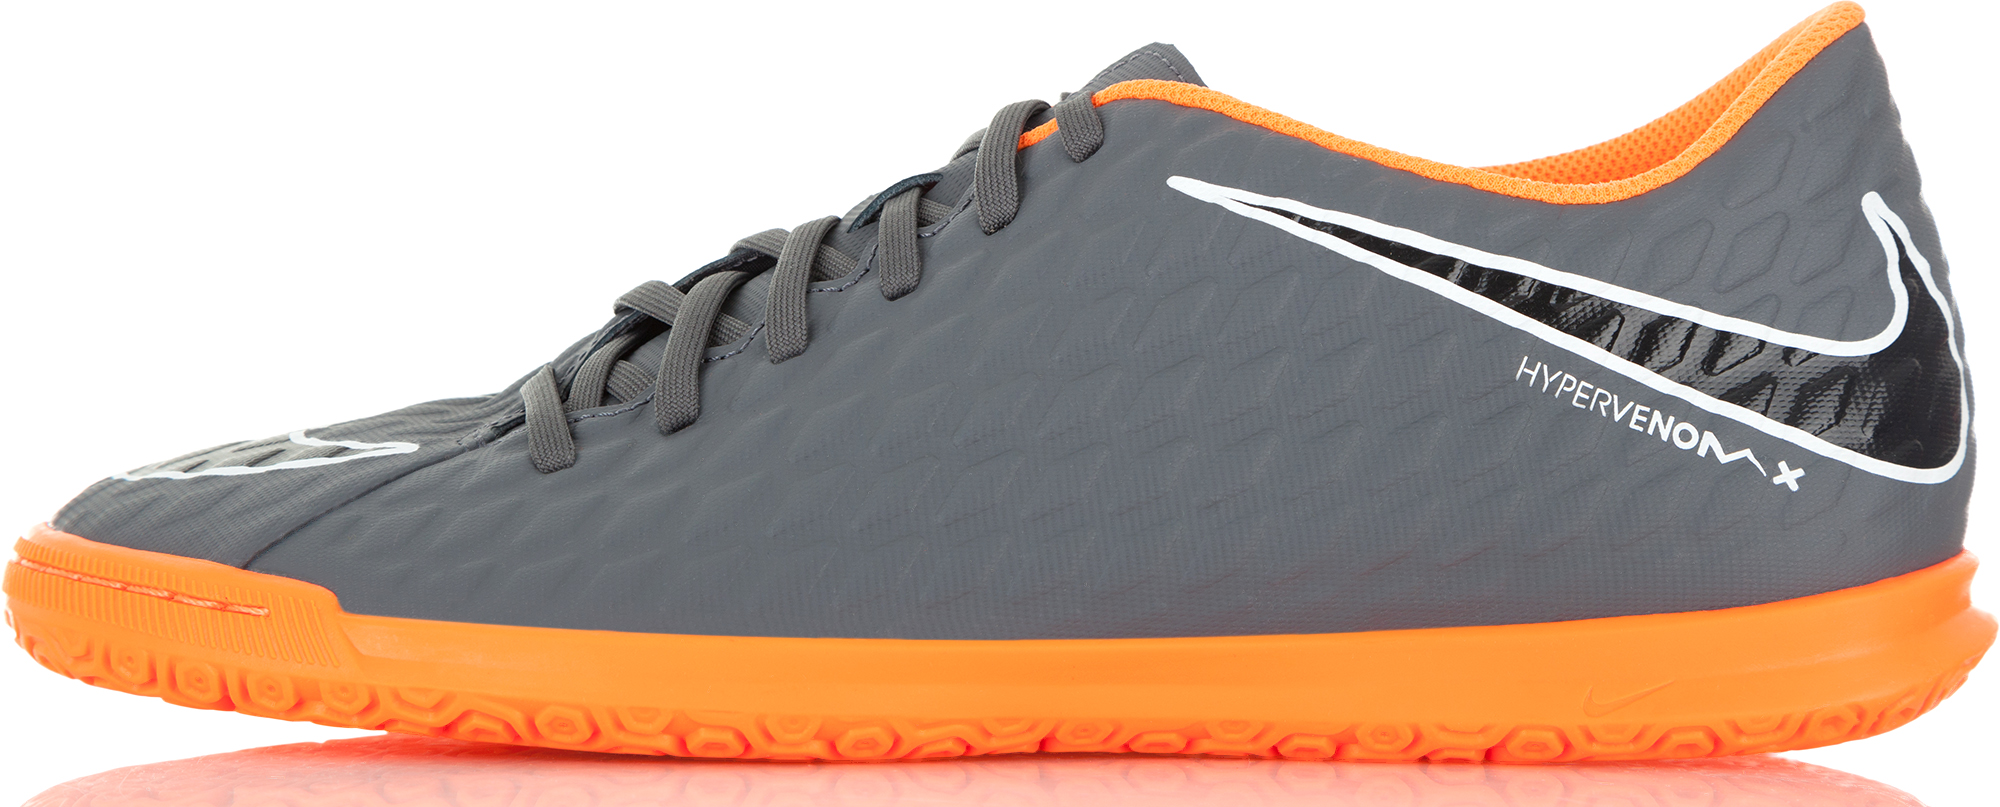 Nike Бутсы мужские Nike Hypervenom PhantomX 3 Club IC бутсы nike бутсы jr mercurialx vapor xi ic